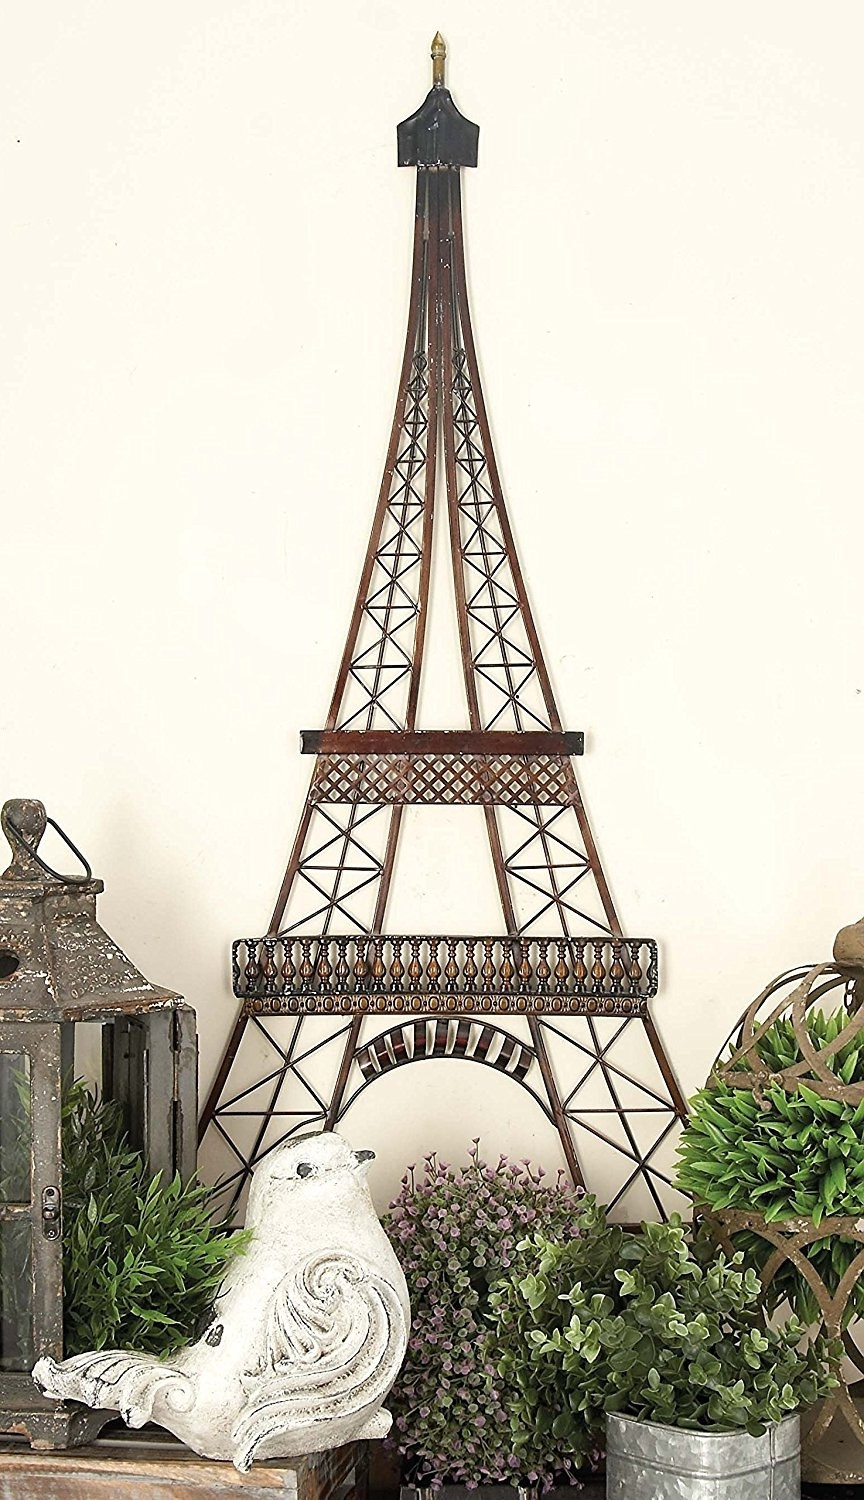 Latest Deco 79 97988 Metal Wall Decor To Make The Es In Previous Photo Eiffel Tower